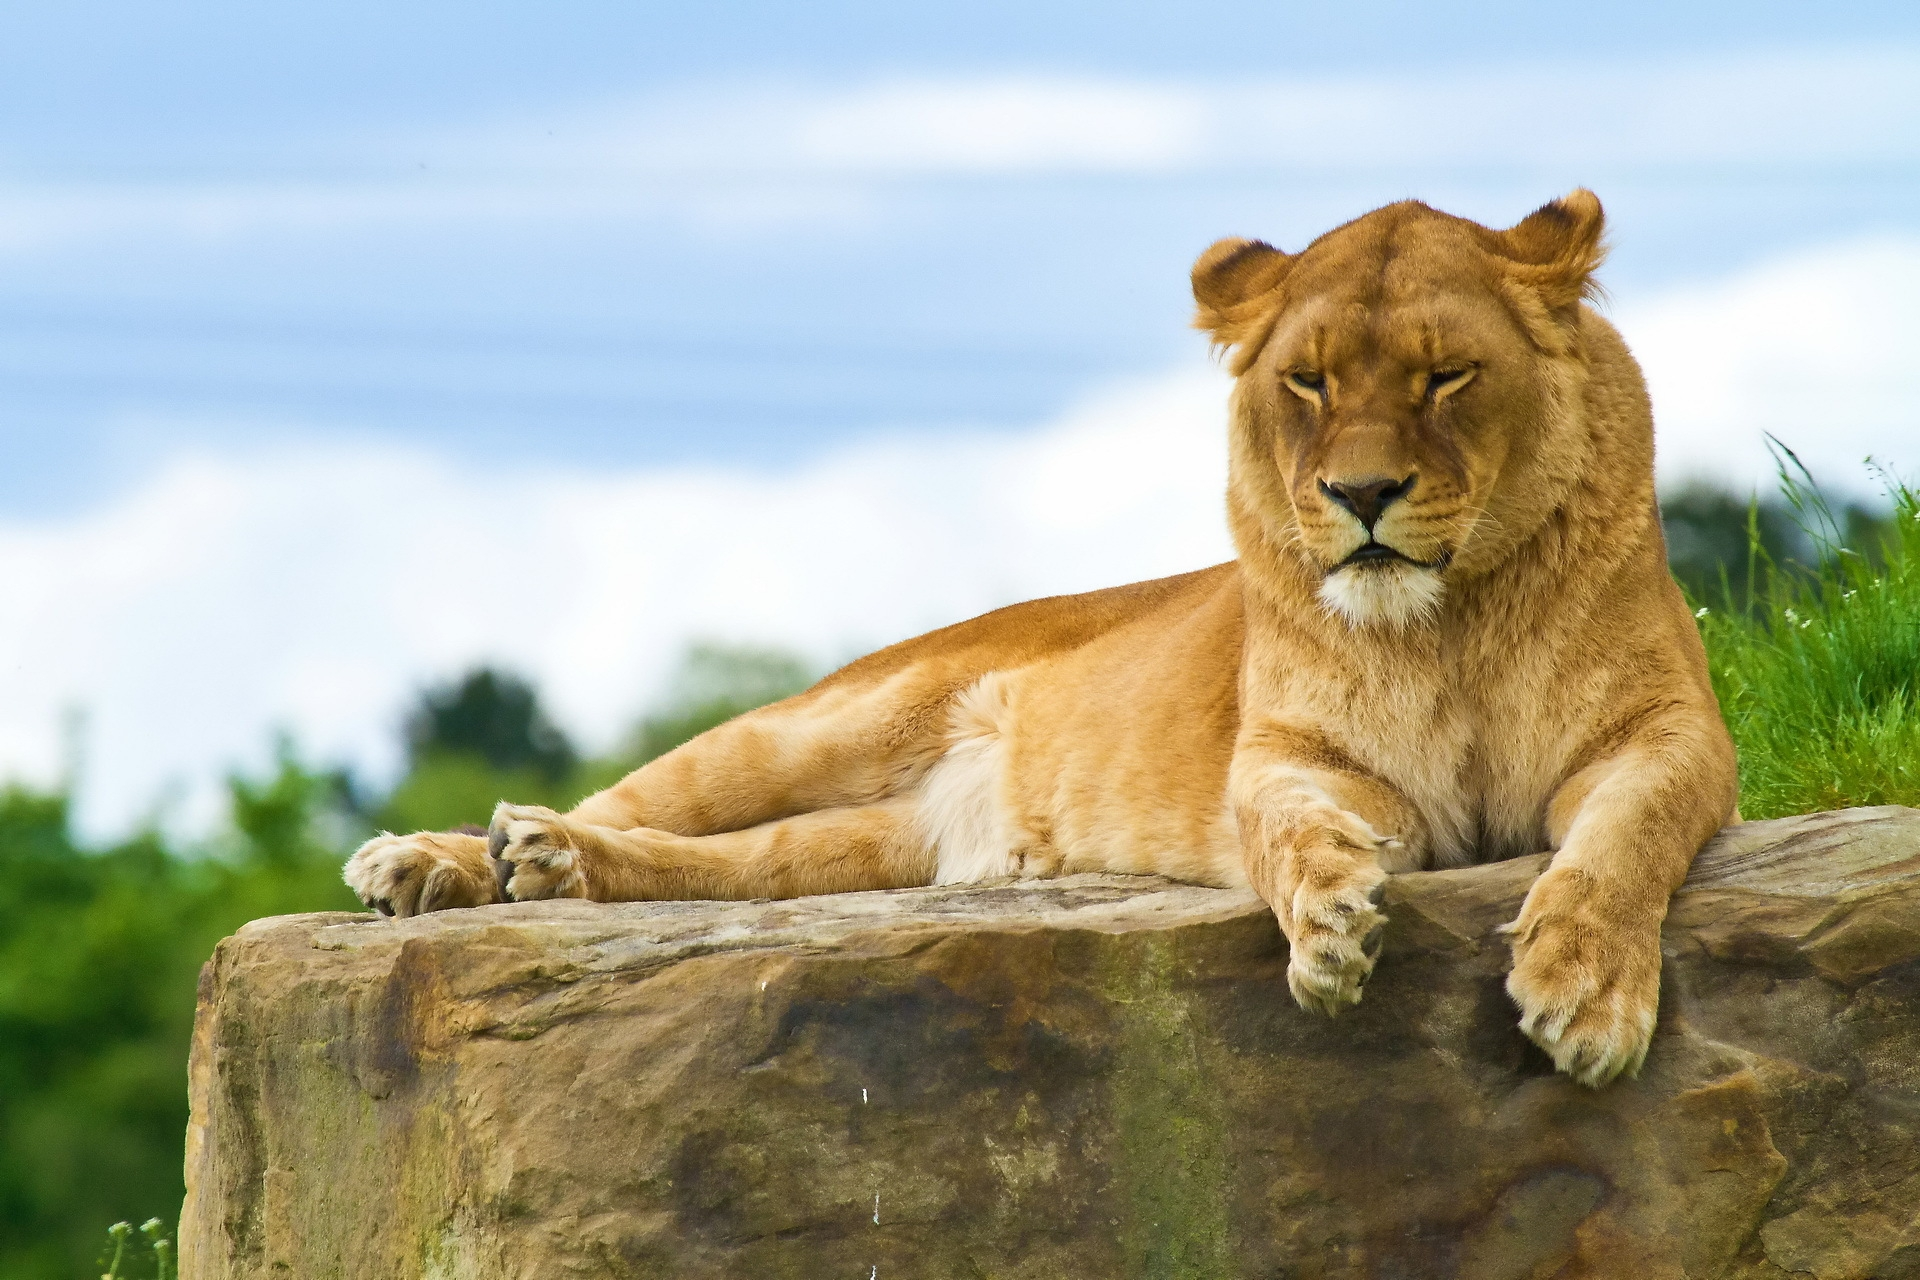 151216 download wallpaper Animals, Lion, To Lie Down, Lie, Rock, Stone, Big Cat, Predator screensavers and pictures for free